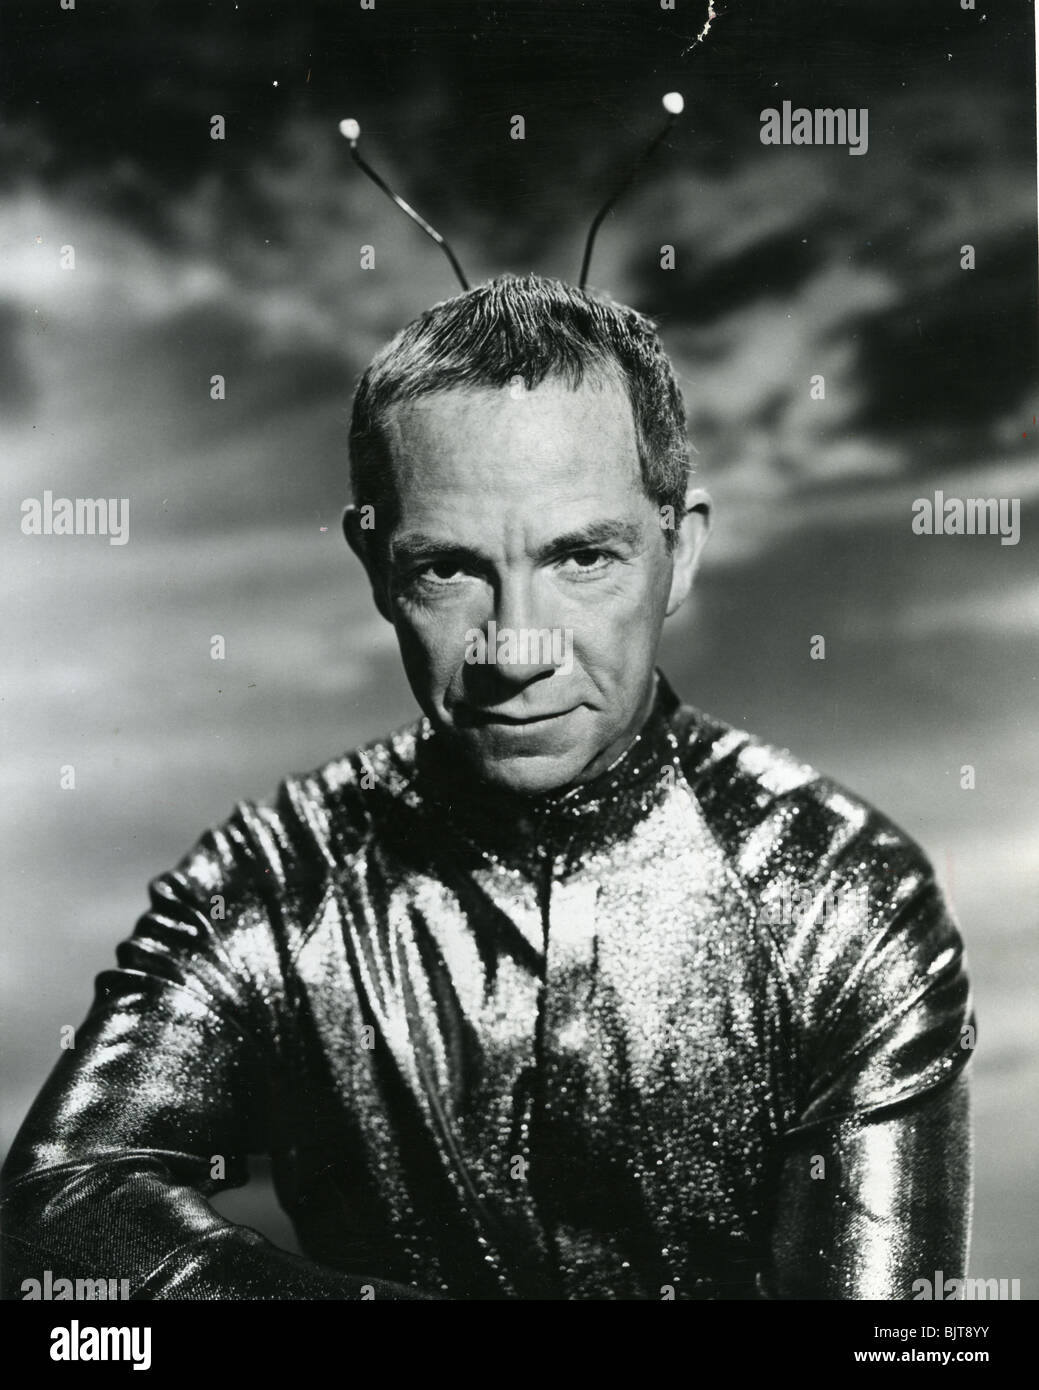 MY FAVOURITE MARTIAN  - CBS TV series (1963-66) with Ray Walston as the Martian - Stock Image